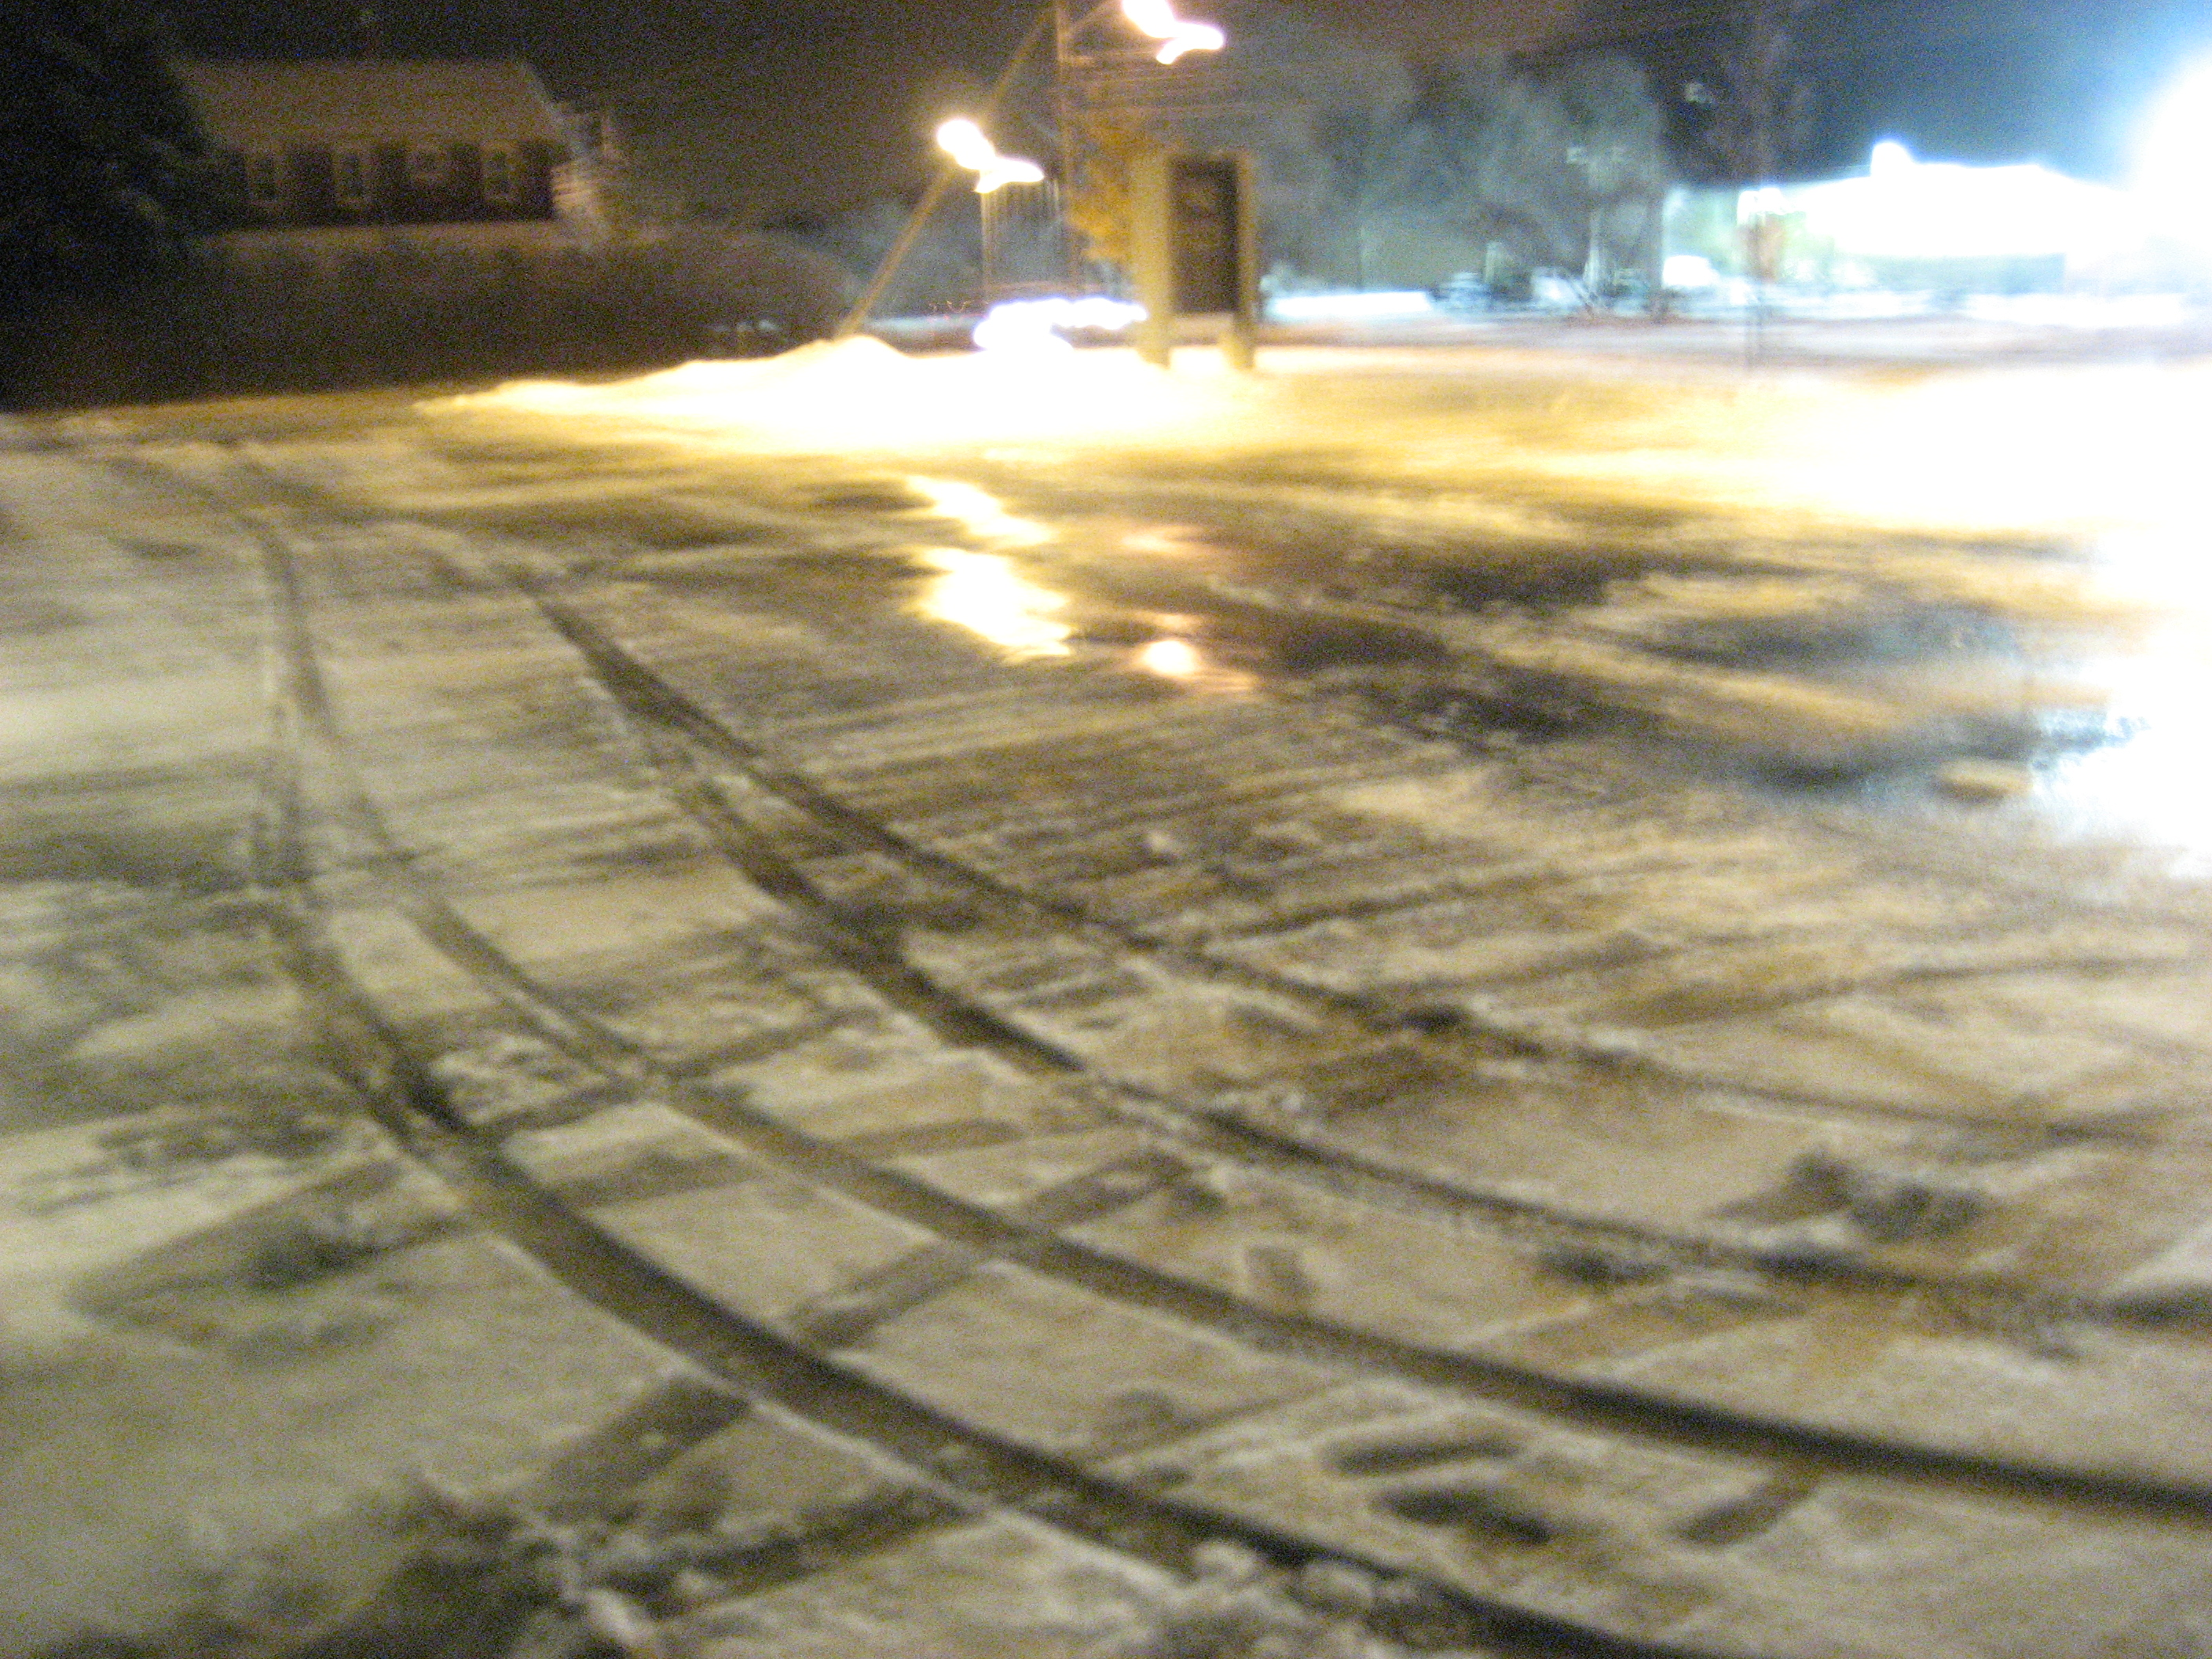 In The News... - Icy Parking Lot at BCHS Closed For Student...